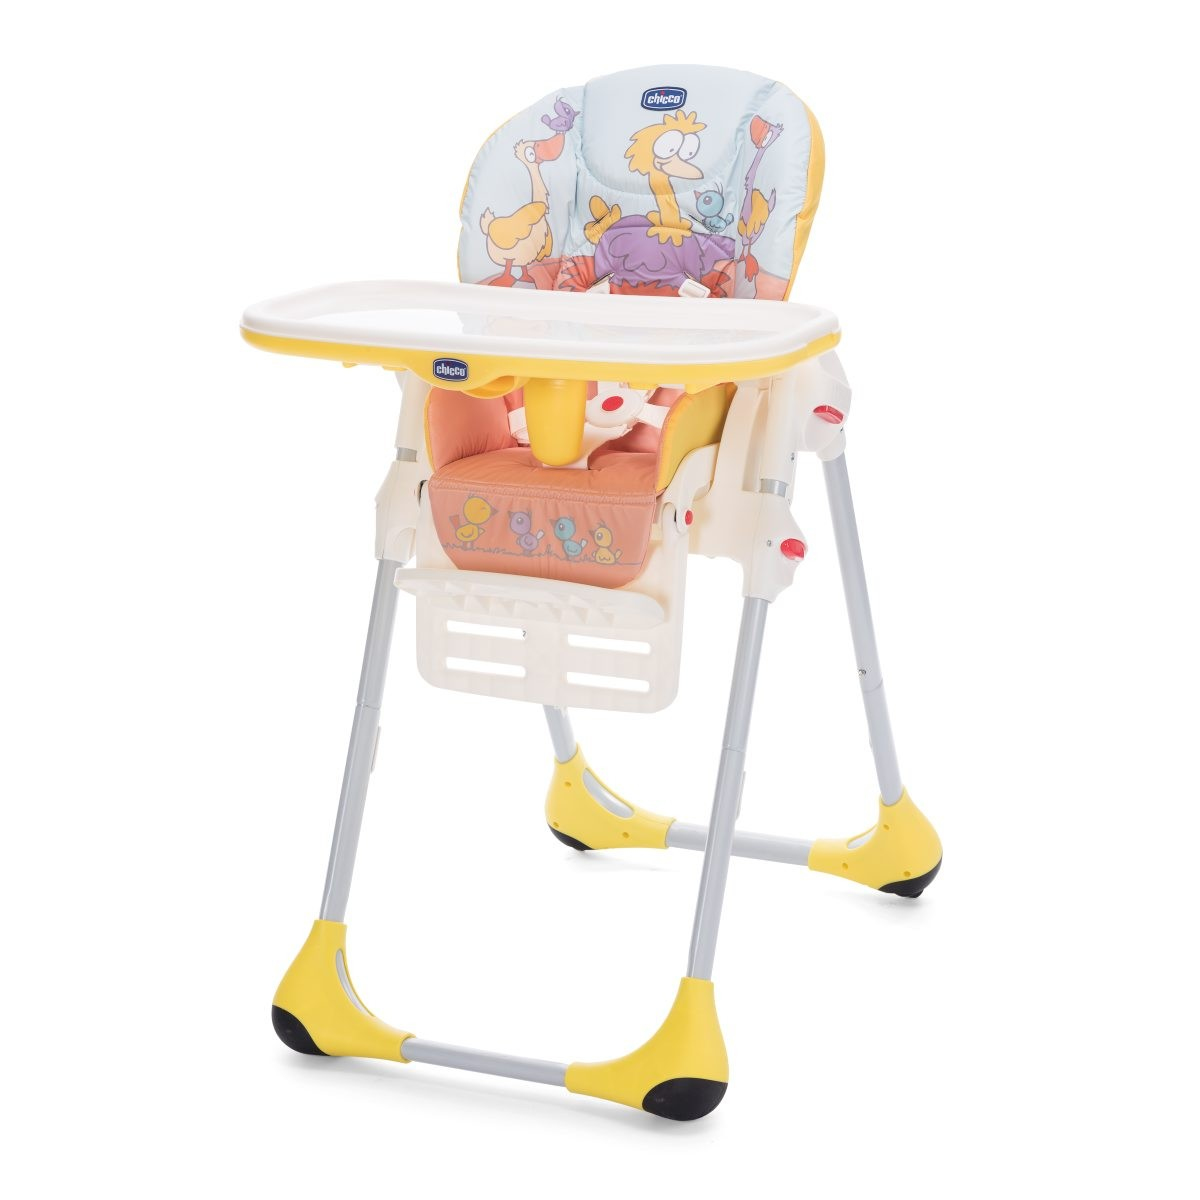 padded high chair mint sashes ᐈ chicco 04079187340000 best price technical specifications traditional seat multicolour